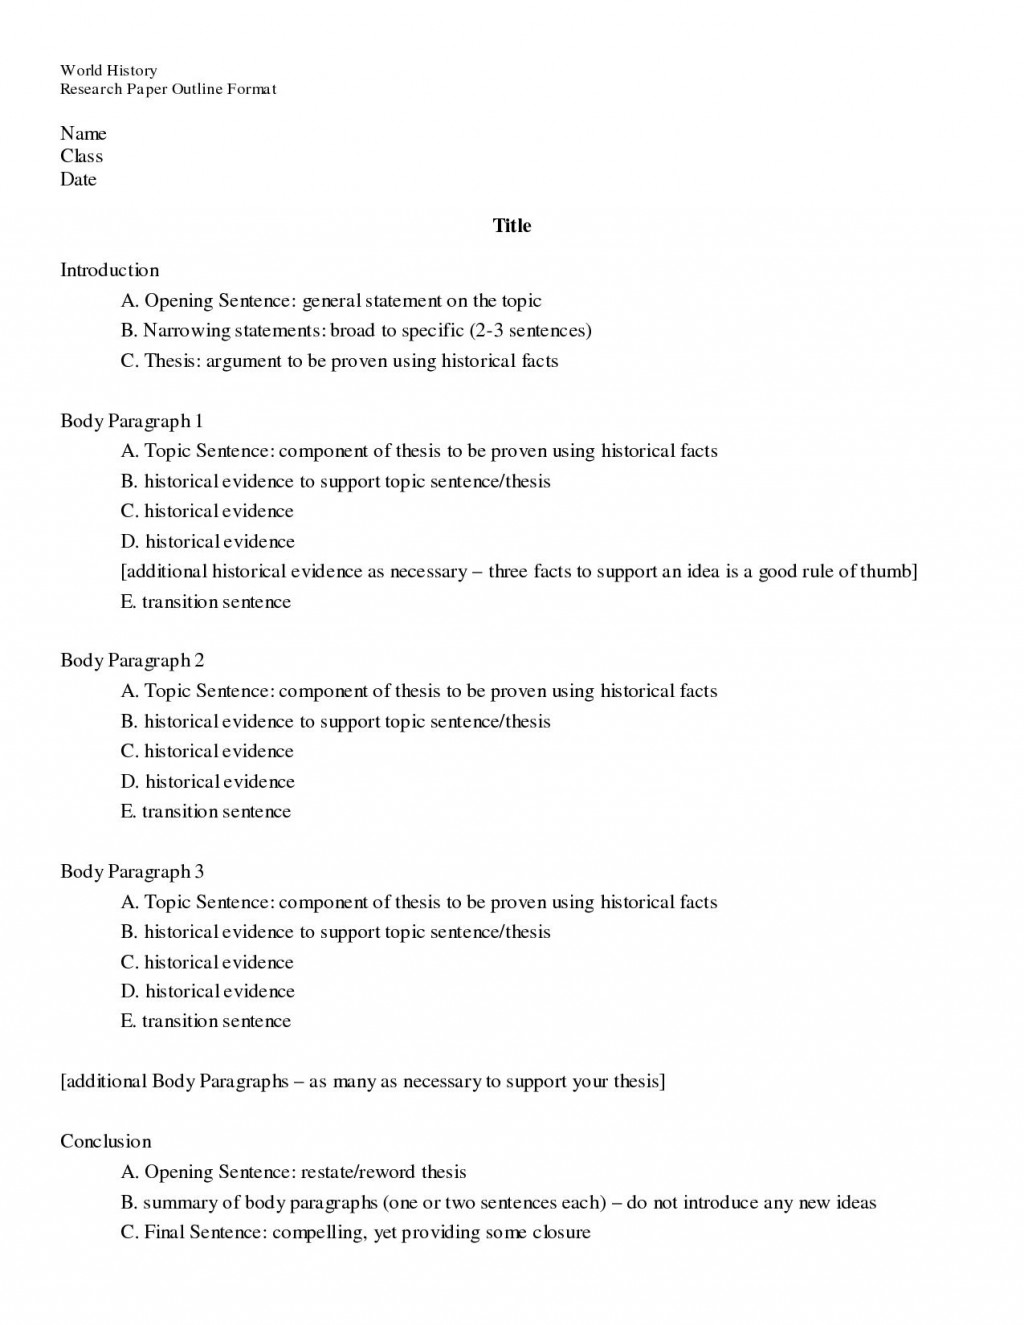 012 Outline Image1 Sample Outlines For Researchs Awful Research Papers Writing Example Apa Format Large